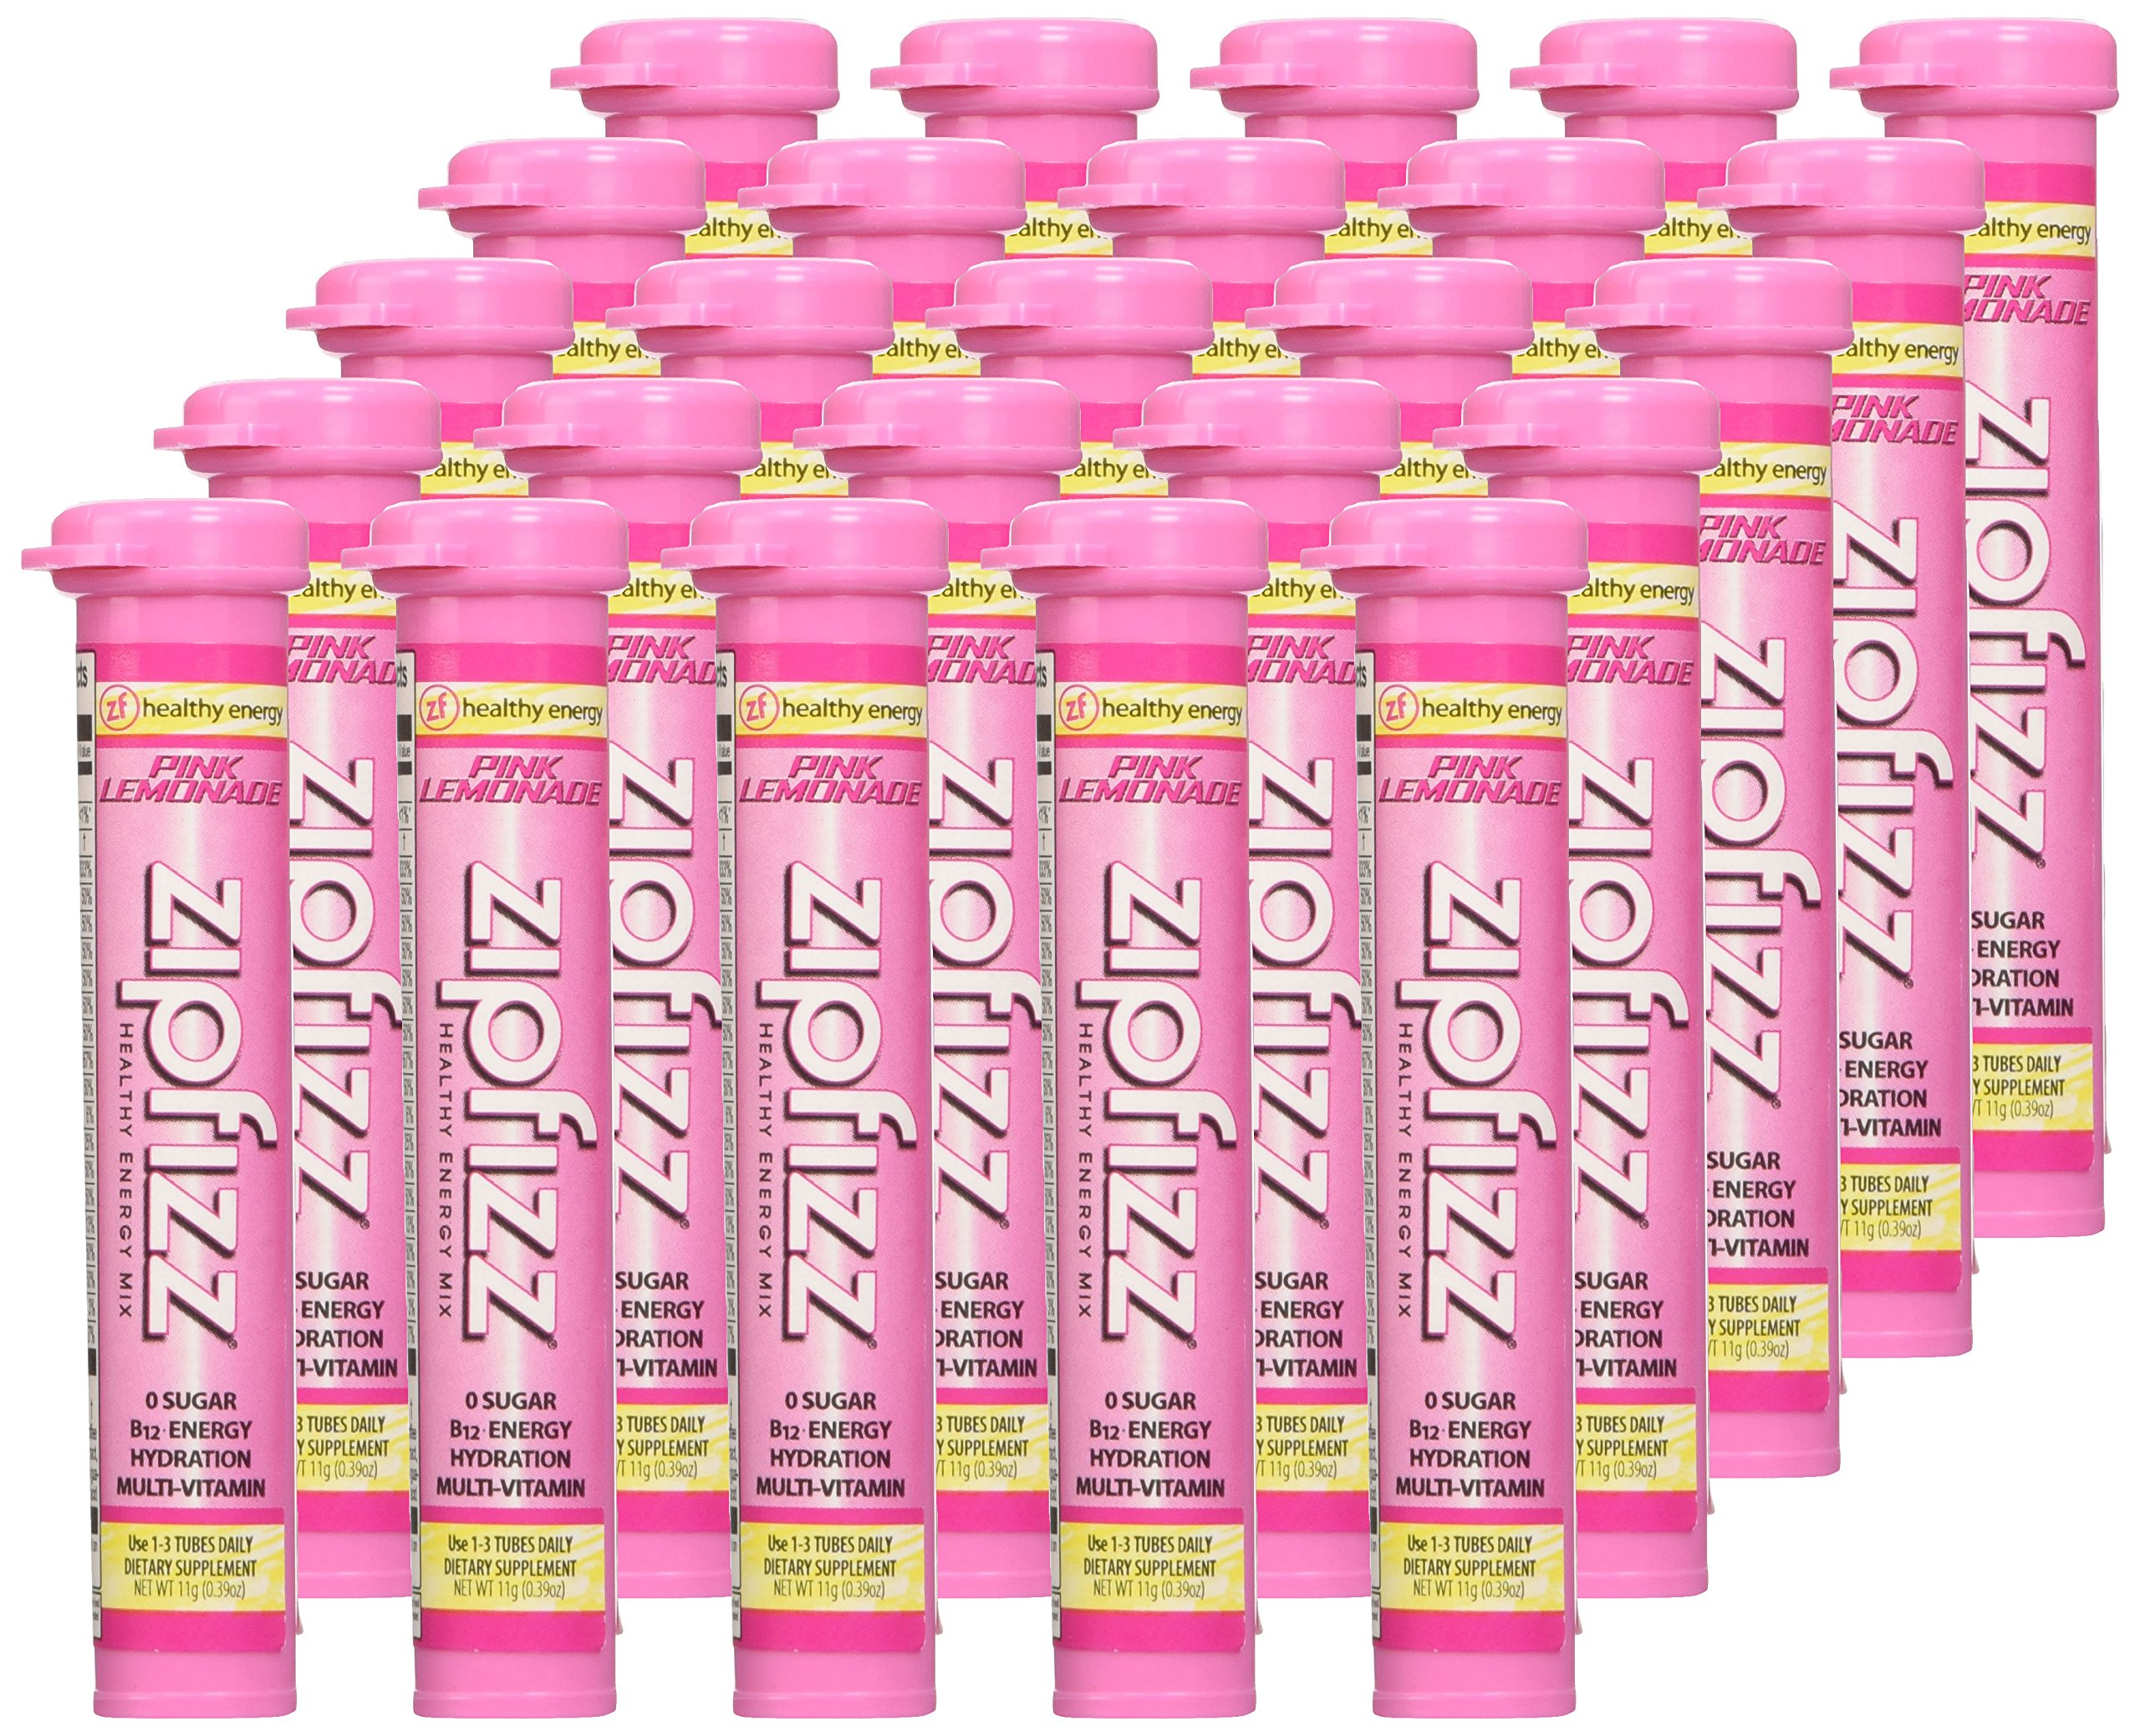 Zipfizz Pink Lemonade Healthy Energy Drink Mix - Transform Your Water Into  a Healthy Energy Drink - 30 Pink Lemonade Tubes